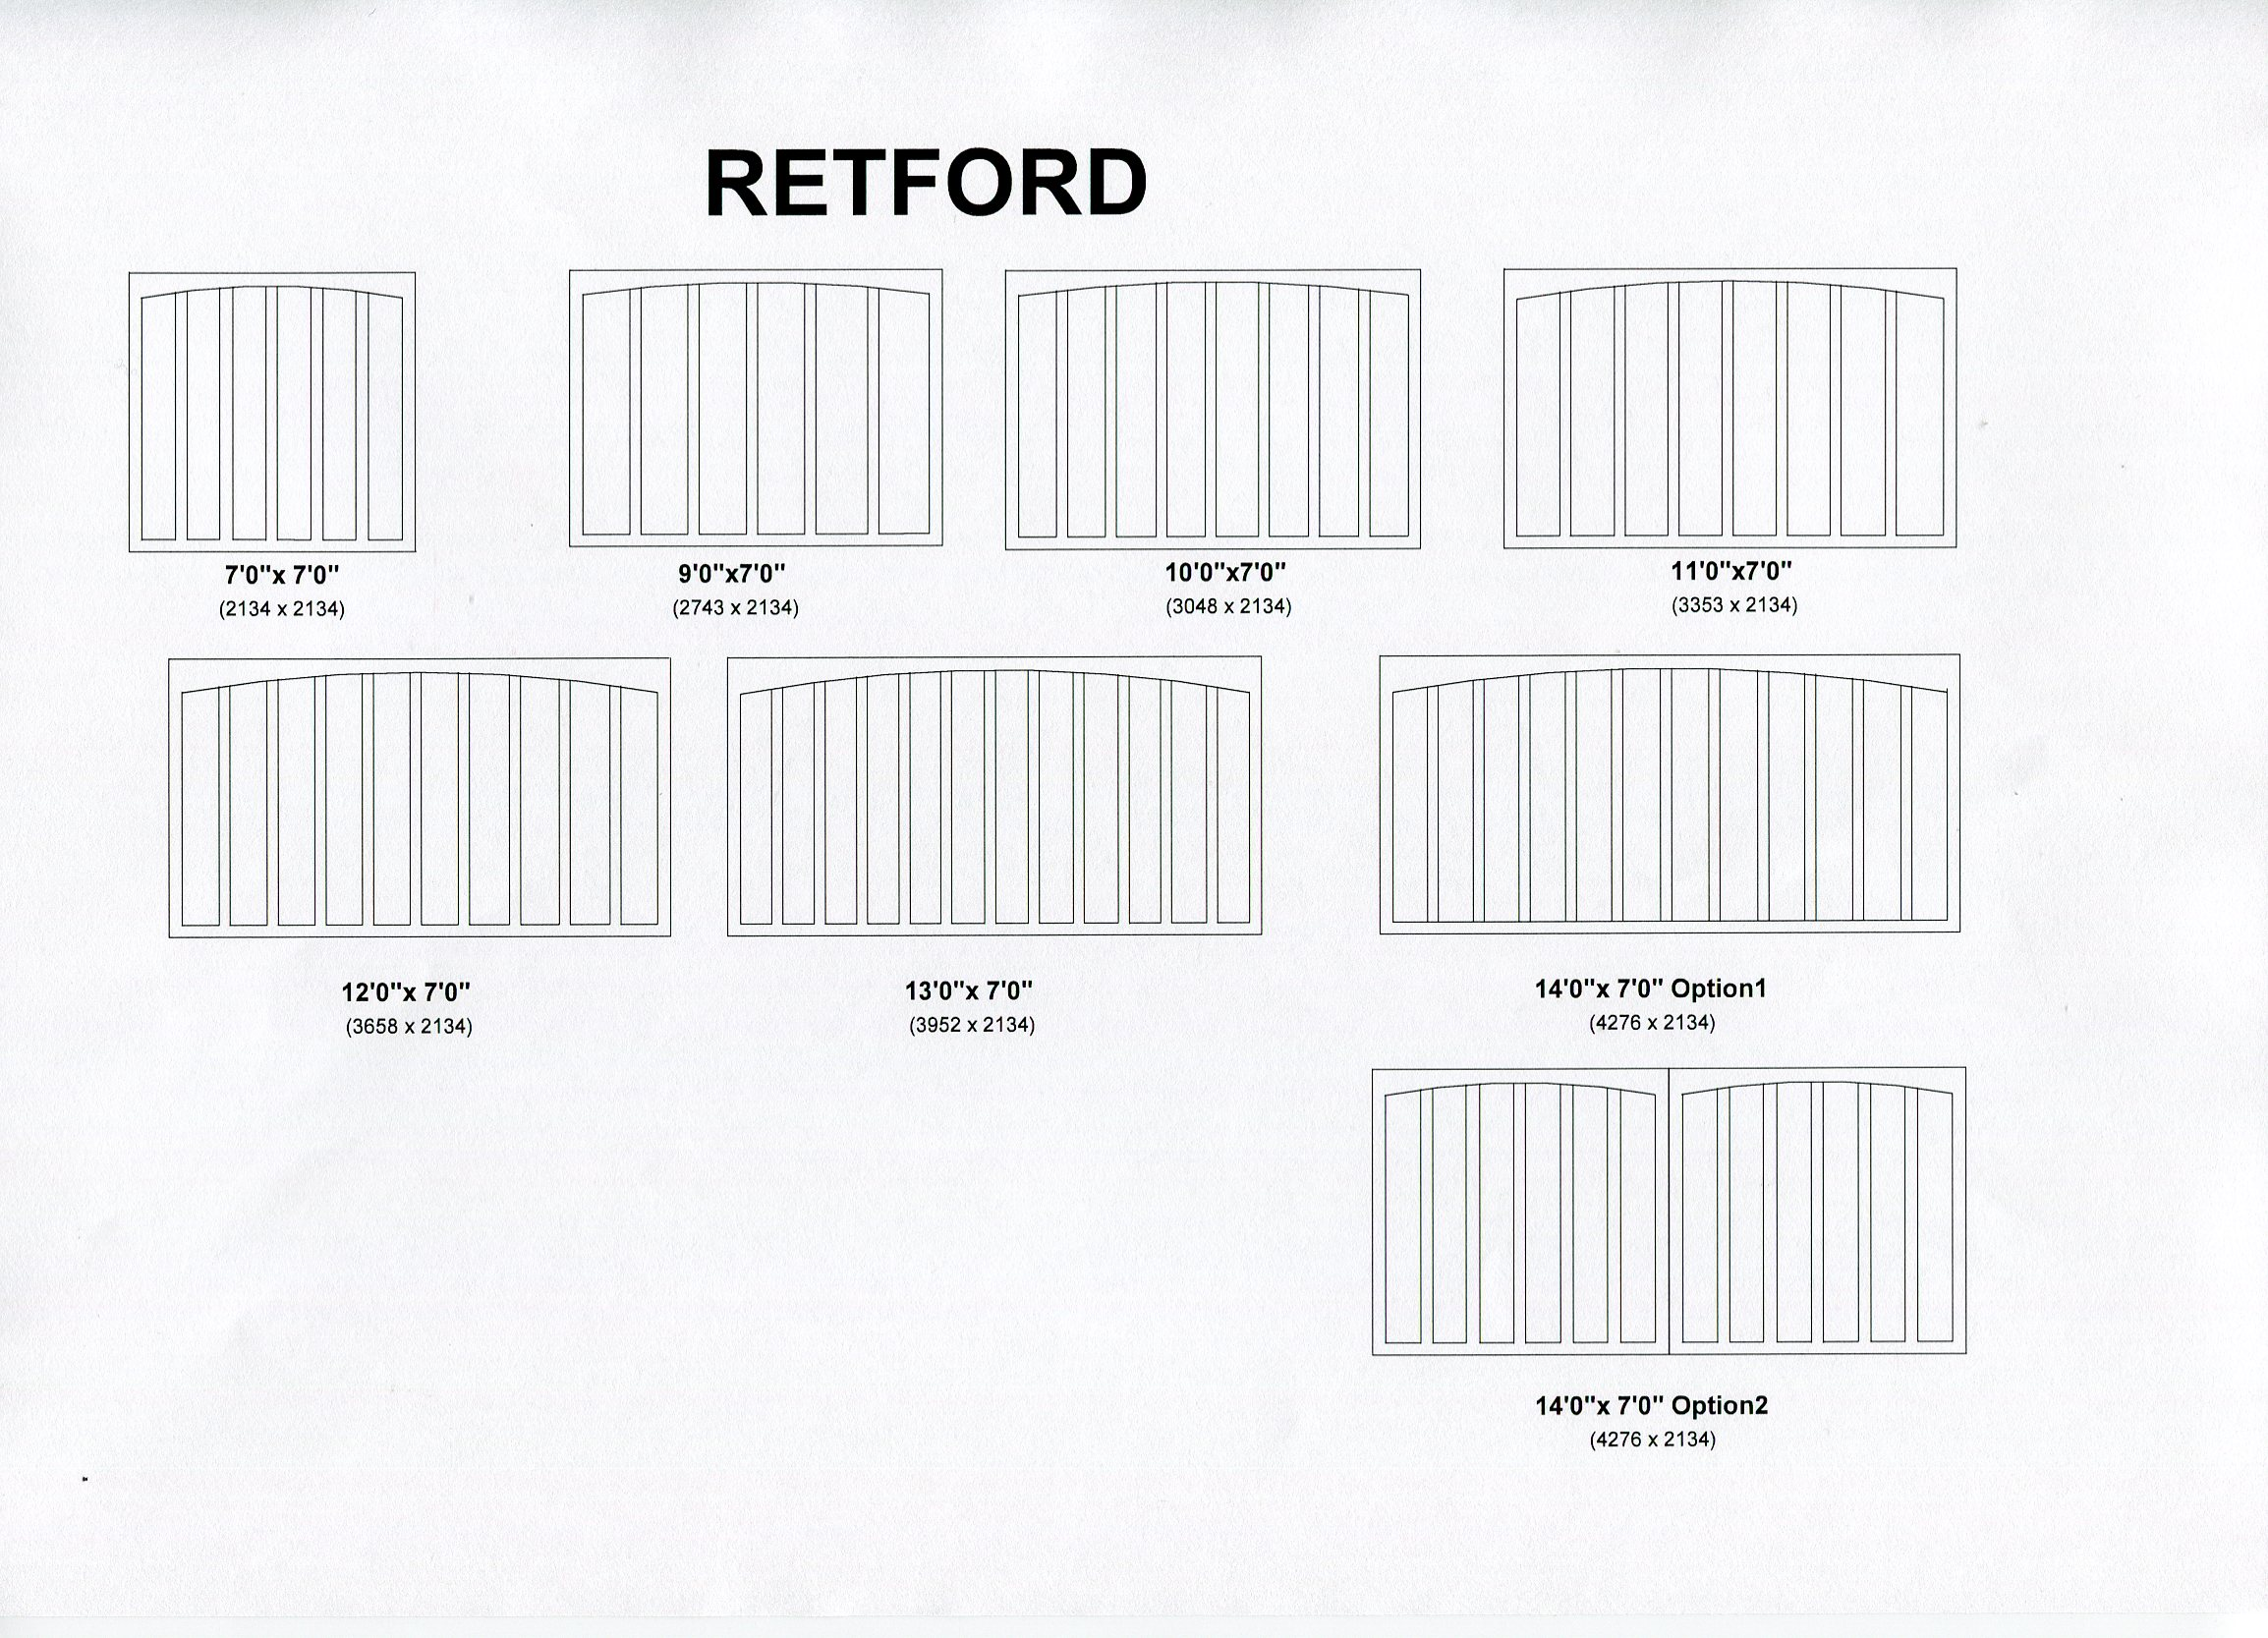 Cedar Door Retford design options